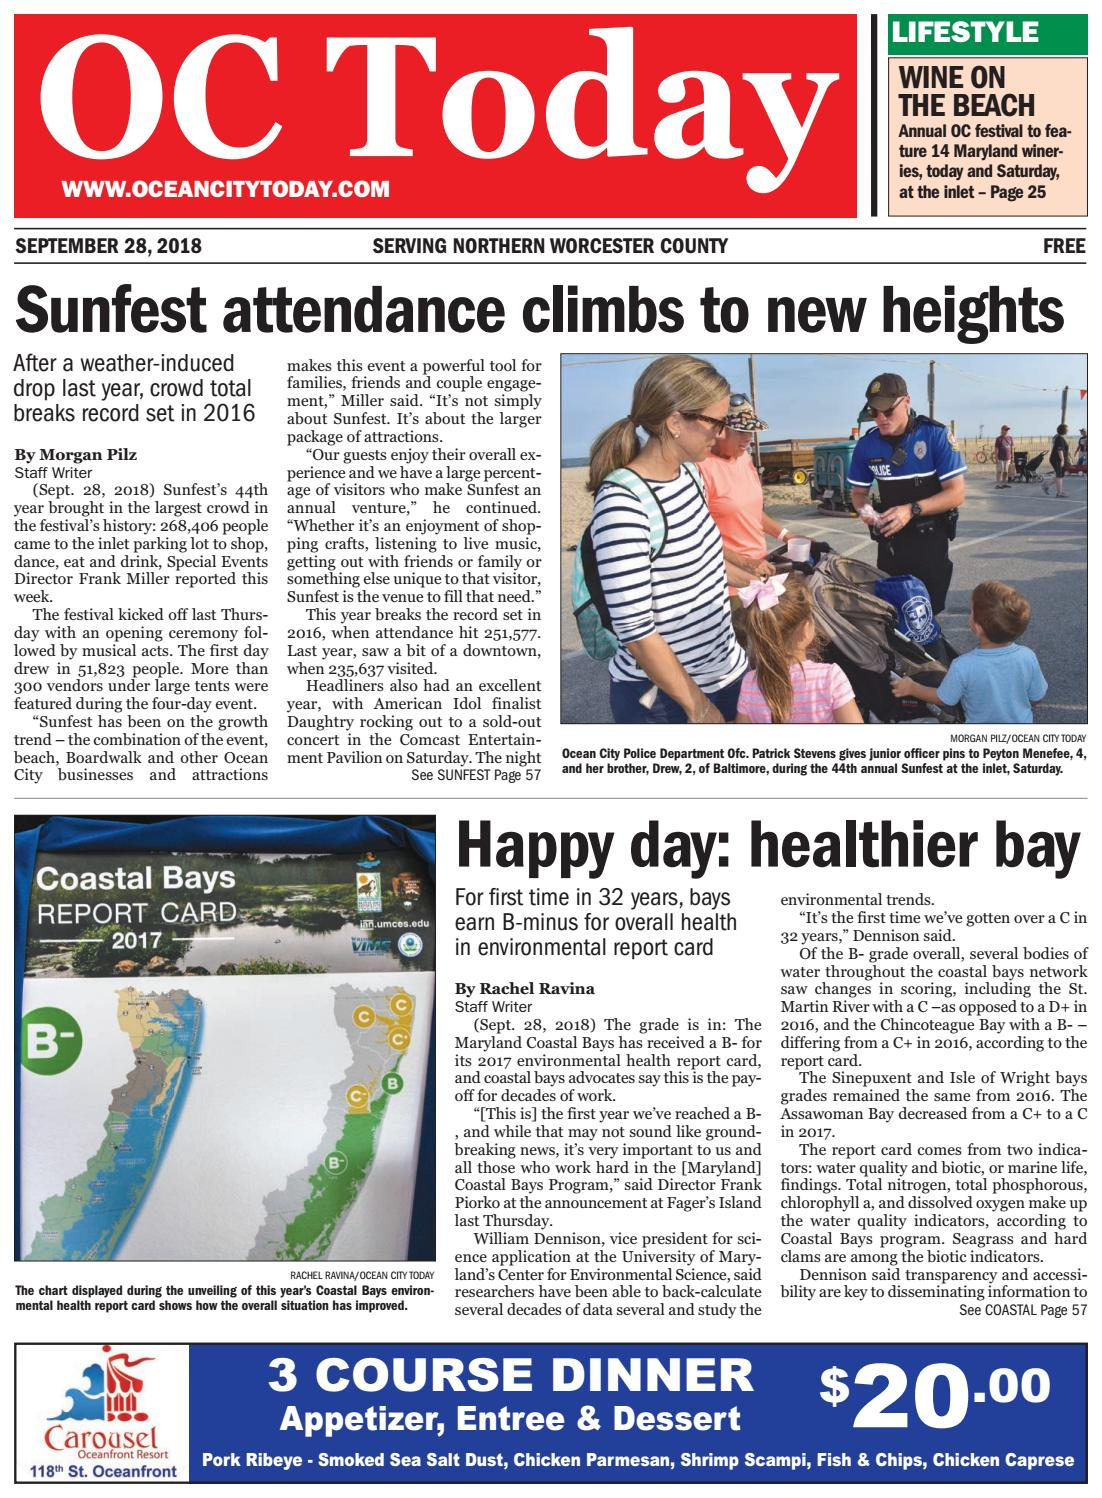 9/28/18 Ocean City Today by ocean city today - issuu